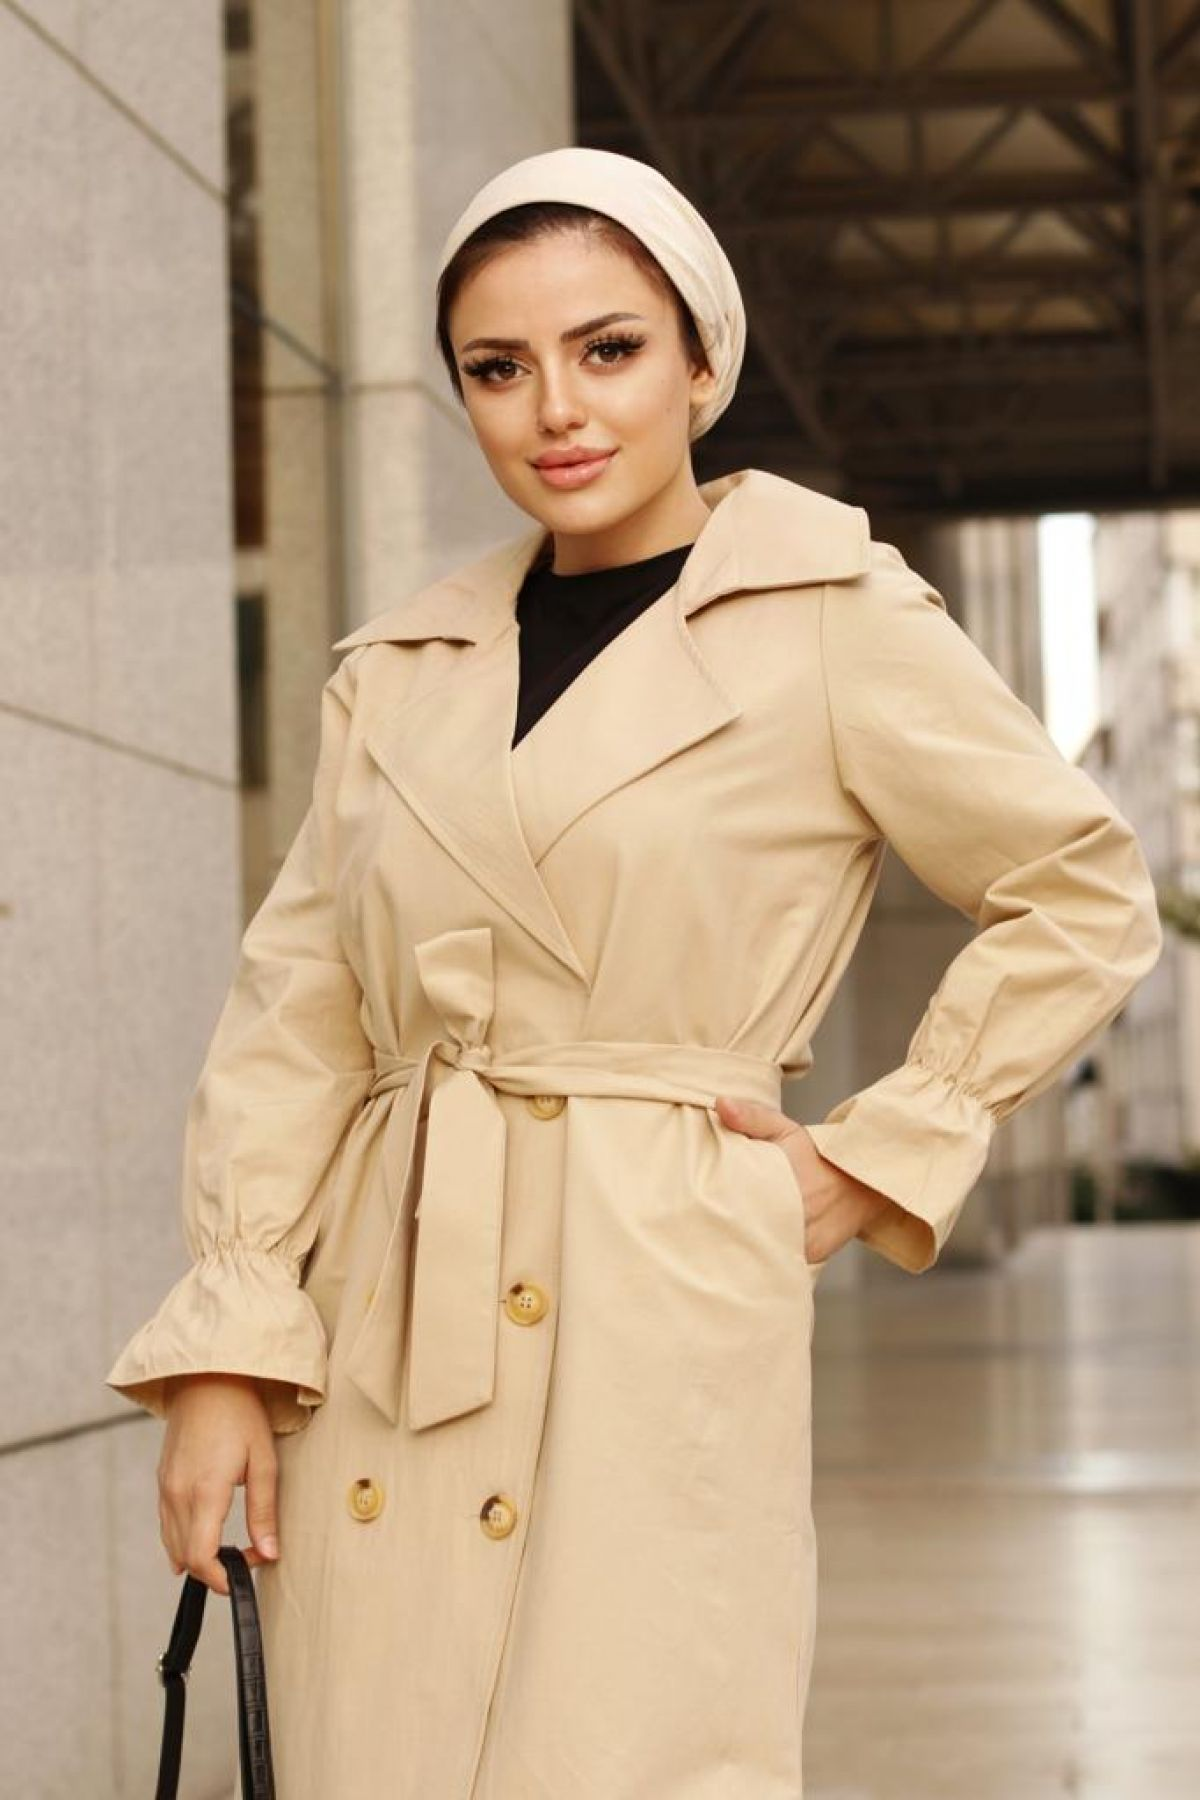 Women's Belted Button Closure Trench Coat 1482 Beige